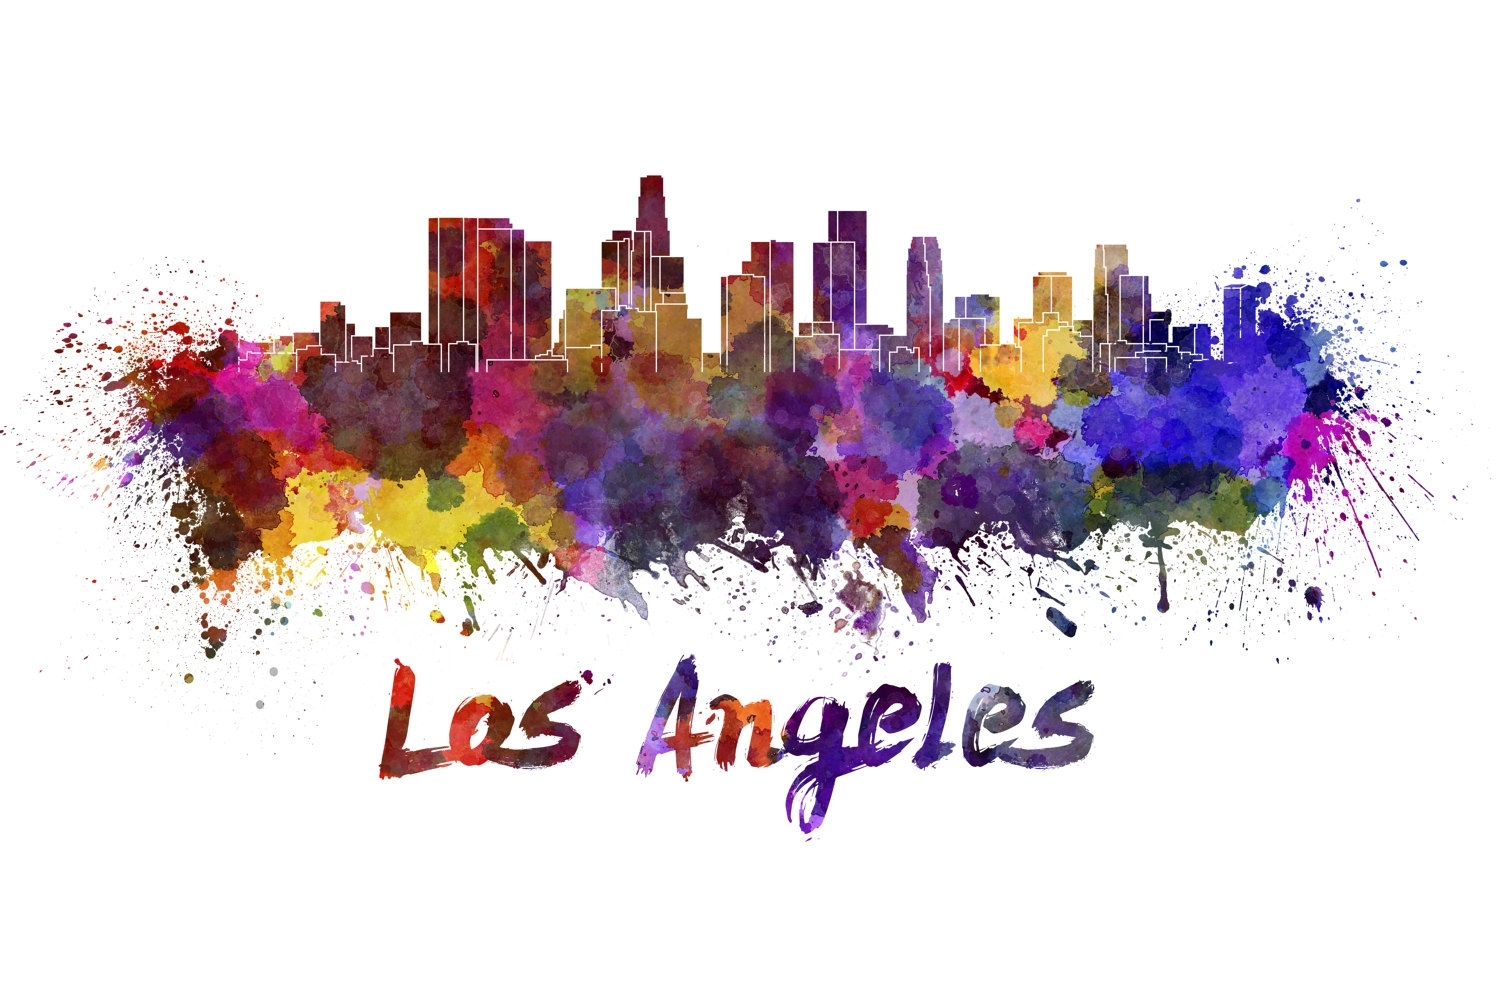 Los Angeles Skyline Watercolor Canvas, Los Angeles Canvas Print Throughout Most Current Los Angeles Canvas Wall Art (View 12 of 15)